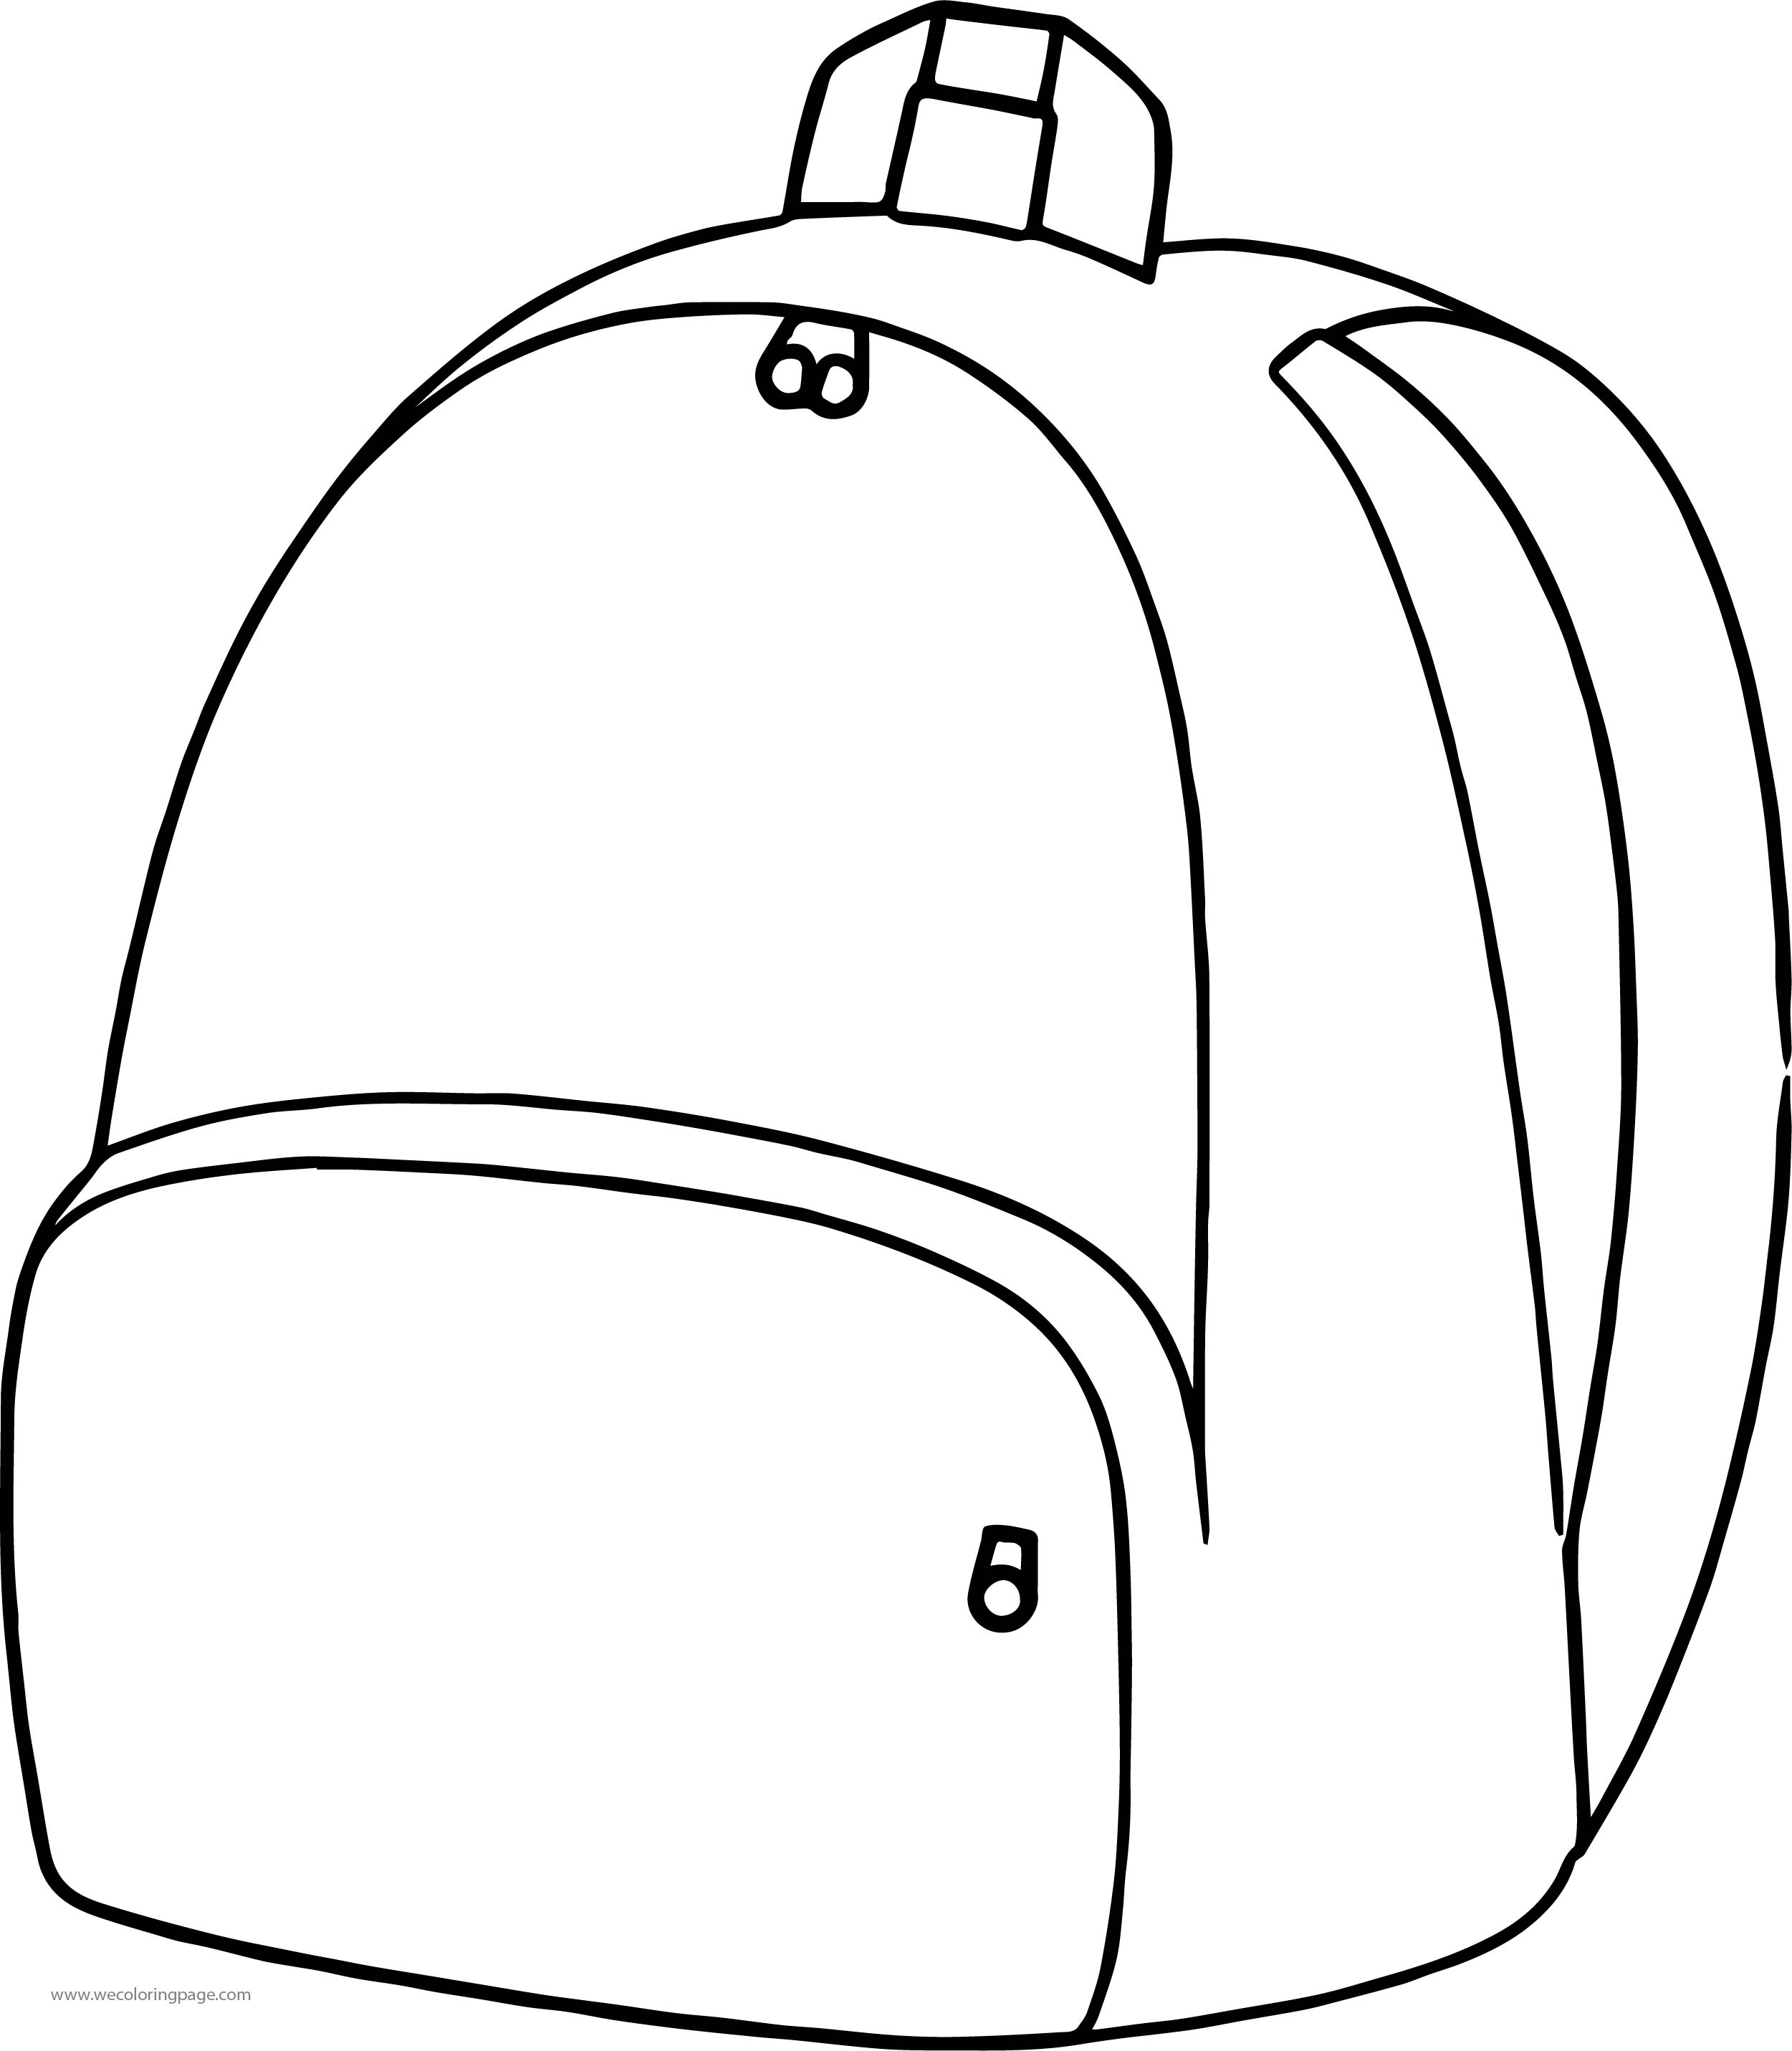 Is School Bag Coloring Page Wecoloringpage